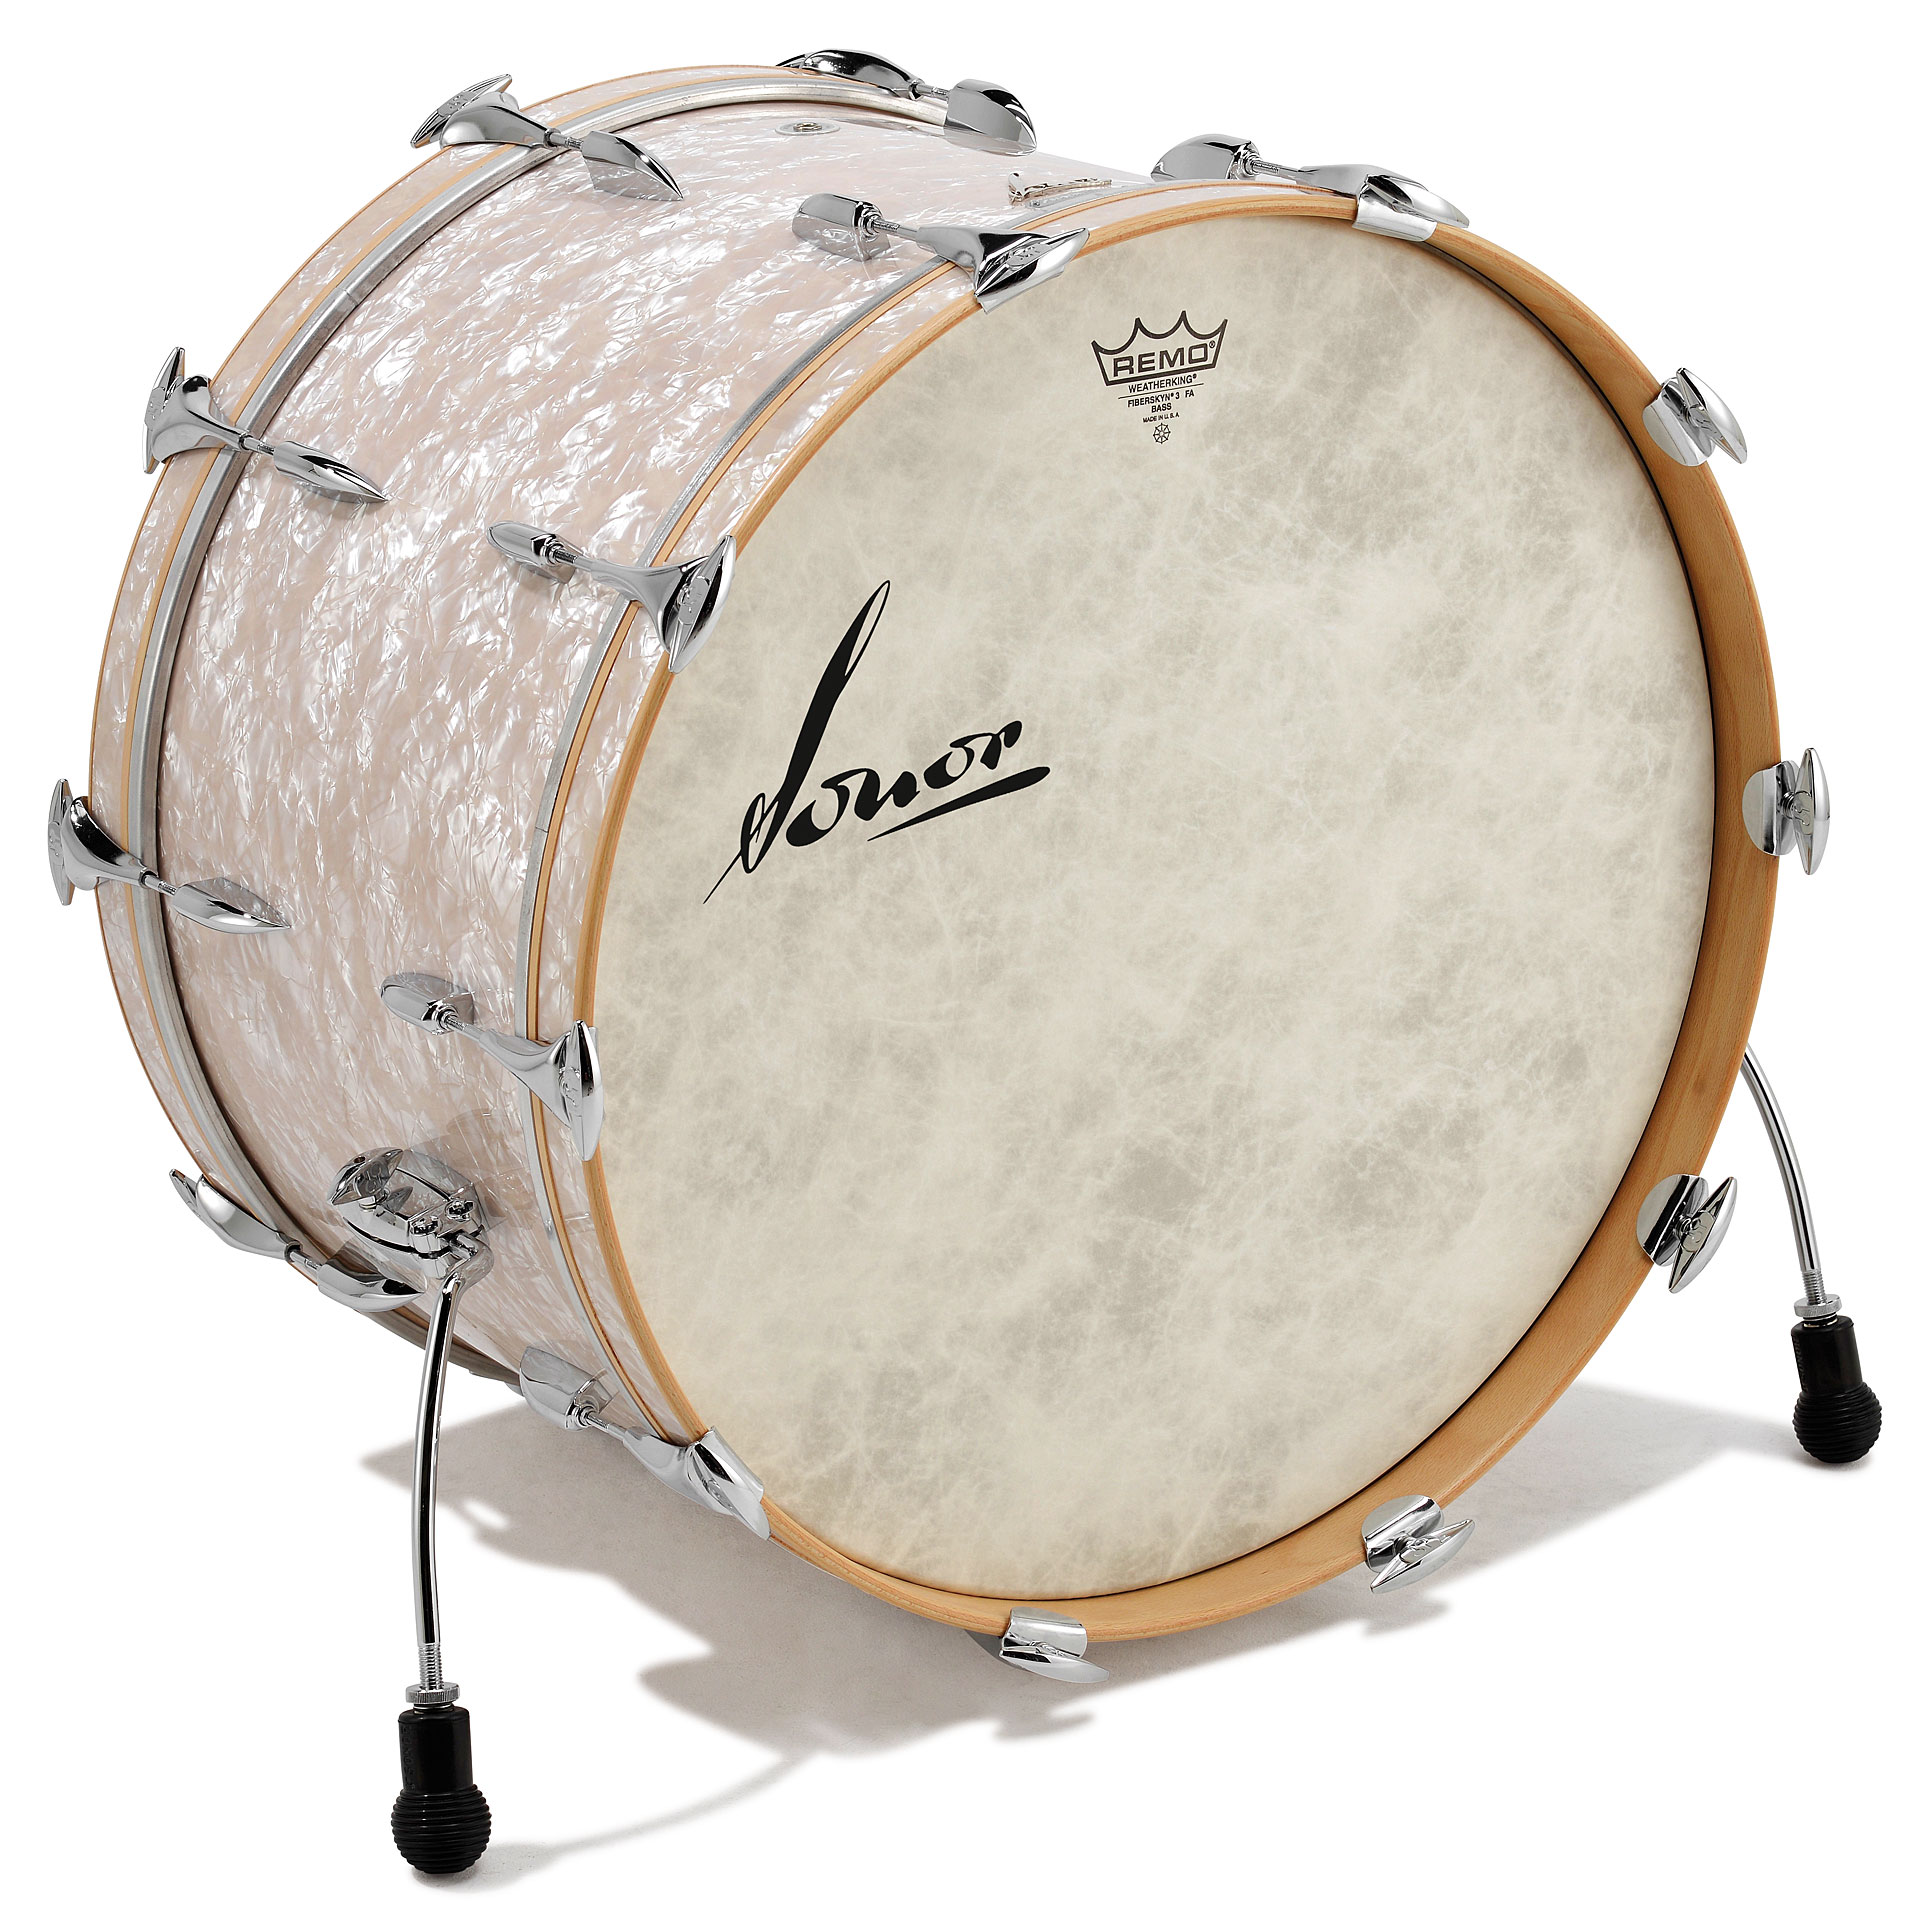 Sonor vintage series vt15 three20 vintage pearl drum kit for Classic house drums